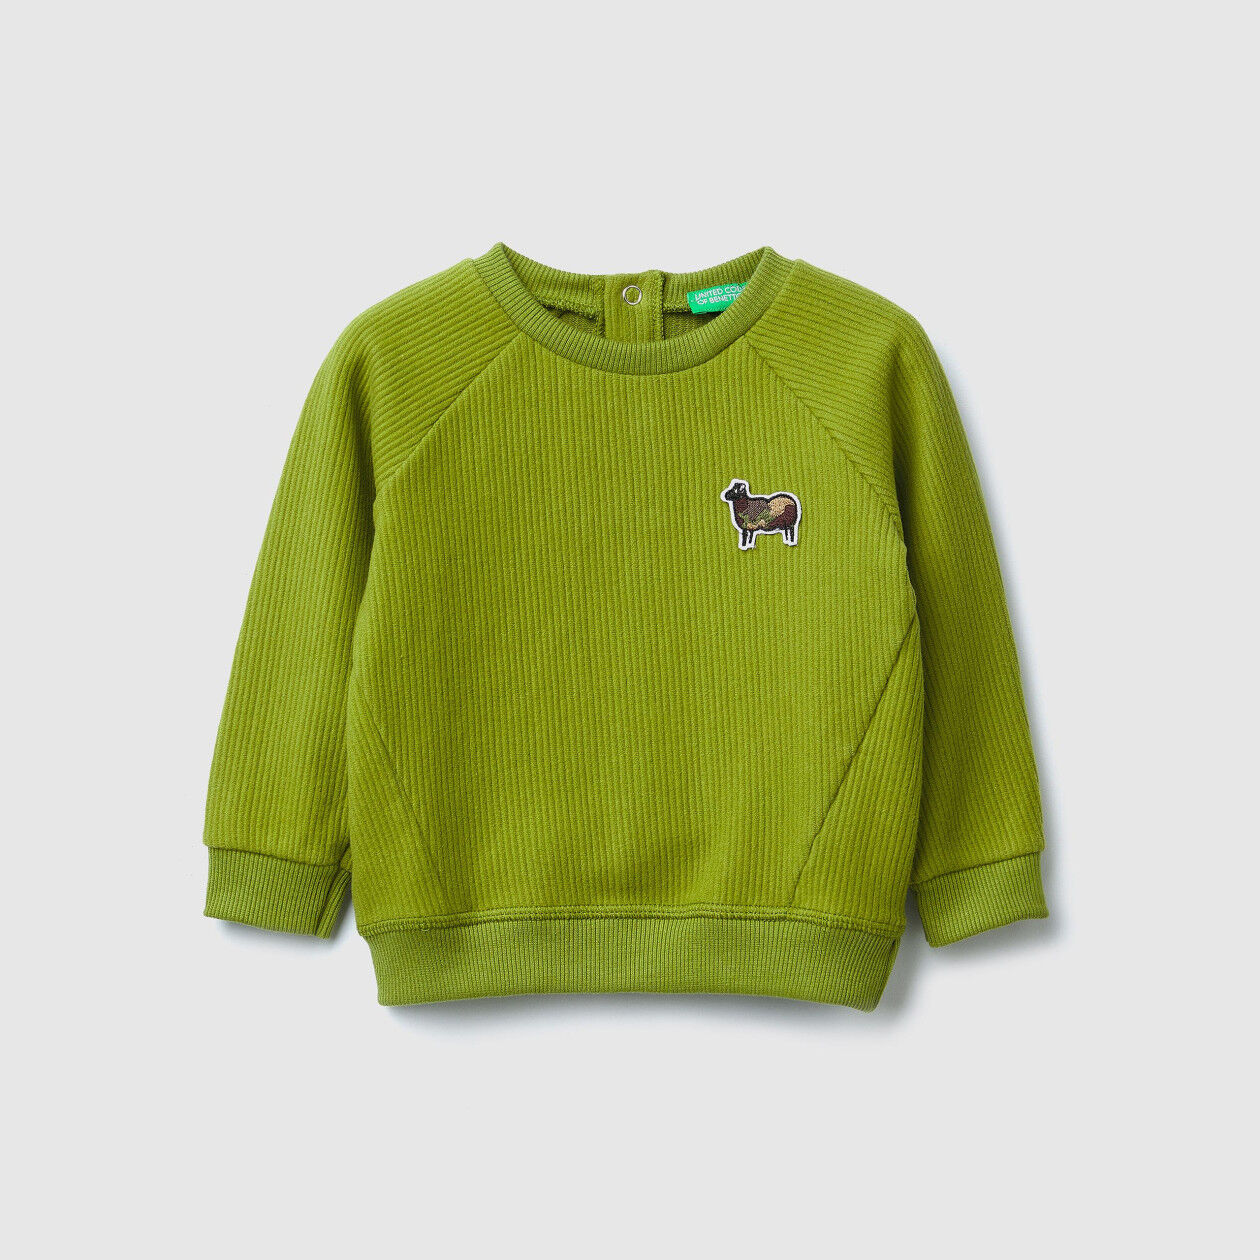 Crew neck sweatshirt with patches